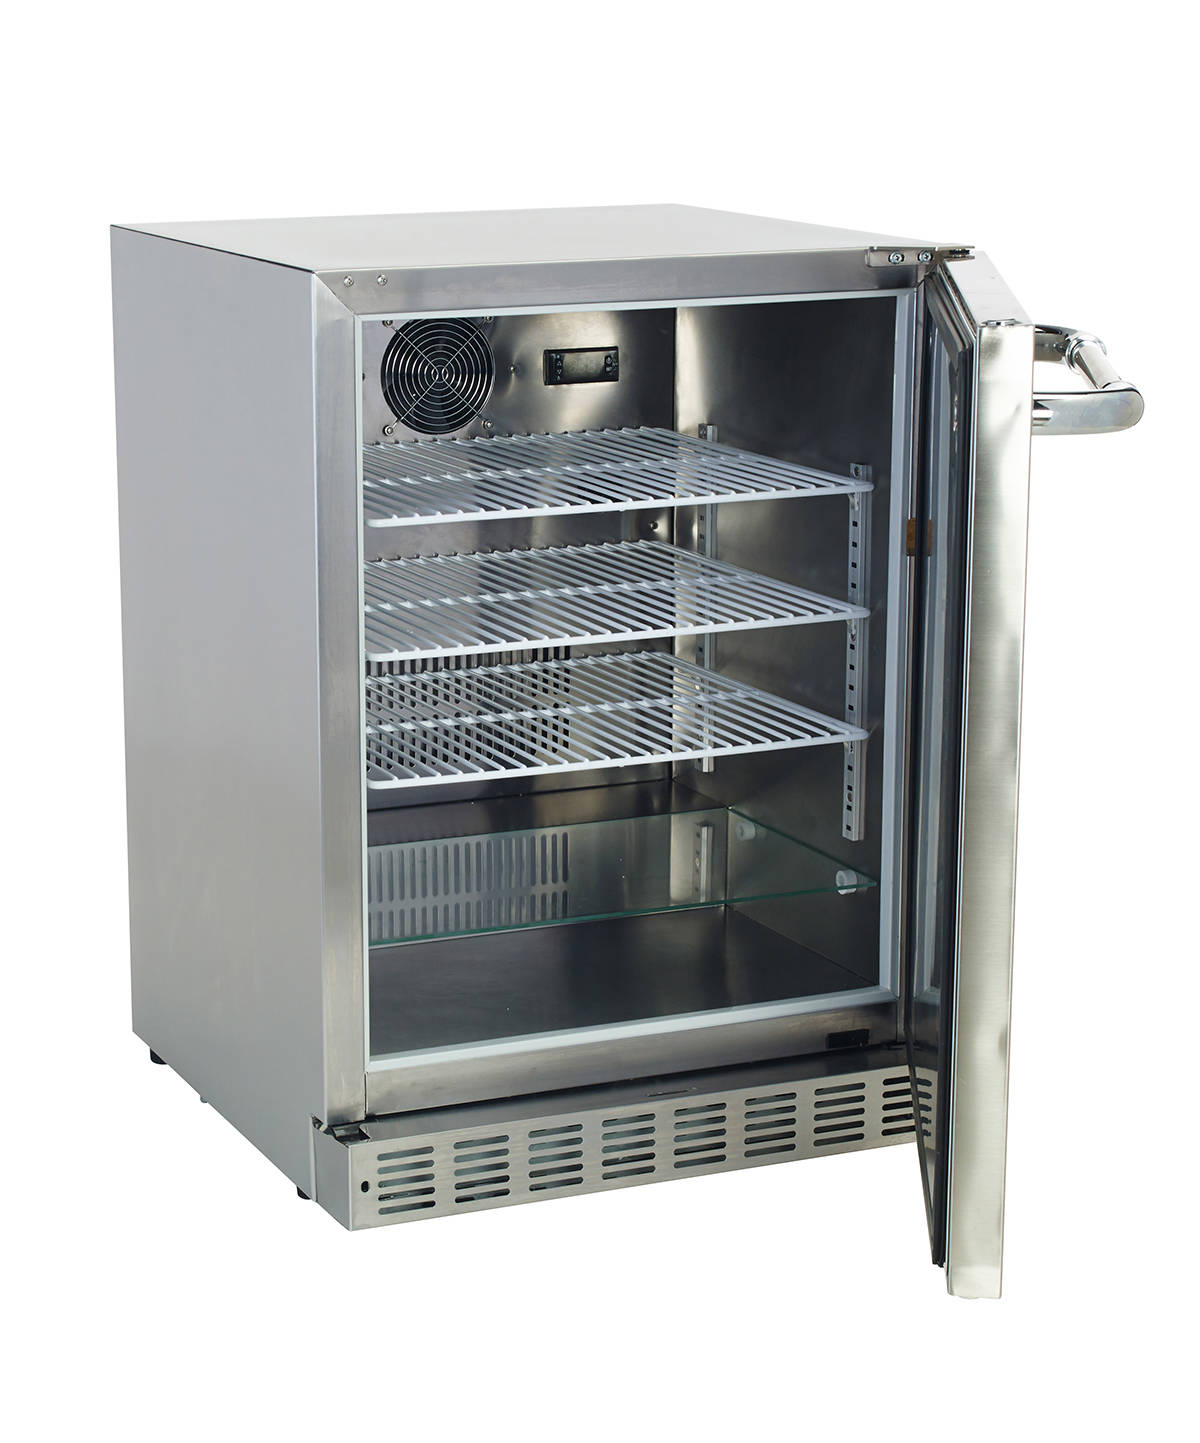 Bull 5 6 Cu Ft Built In Freestanding Outdoor Stainless